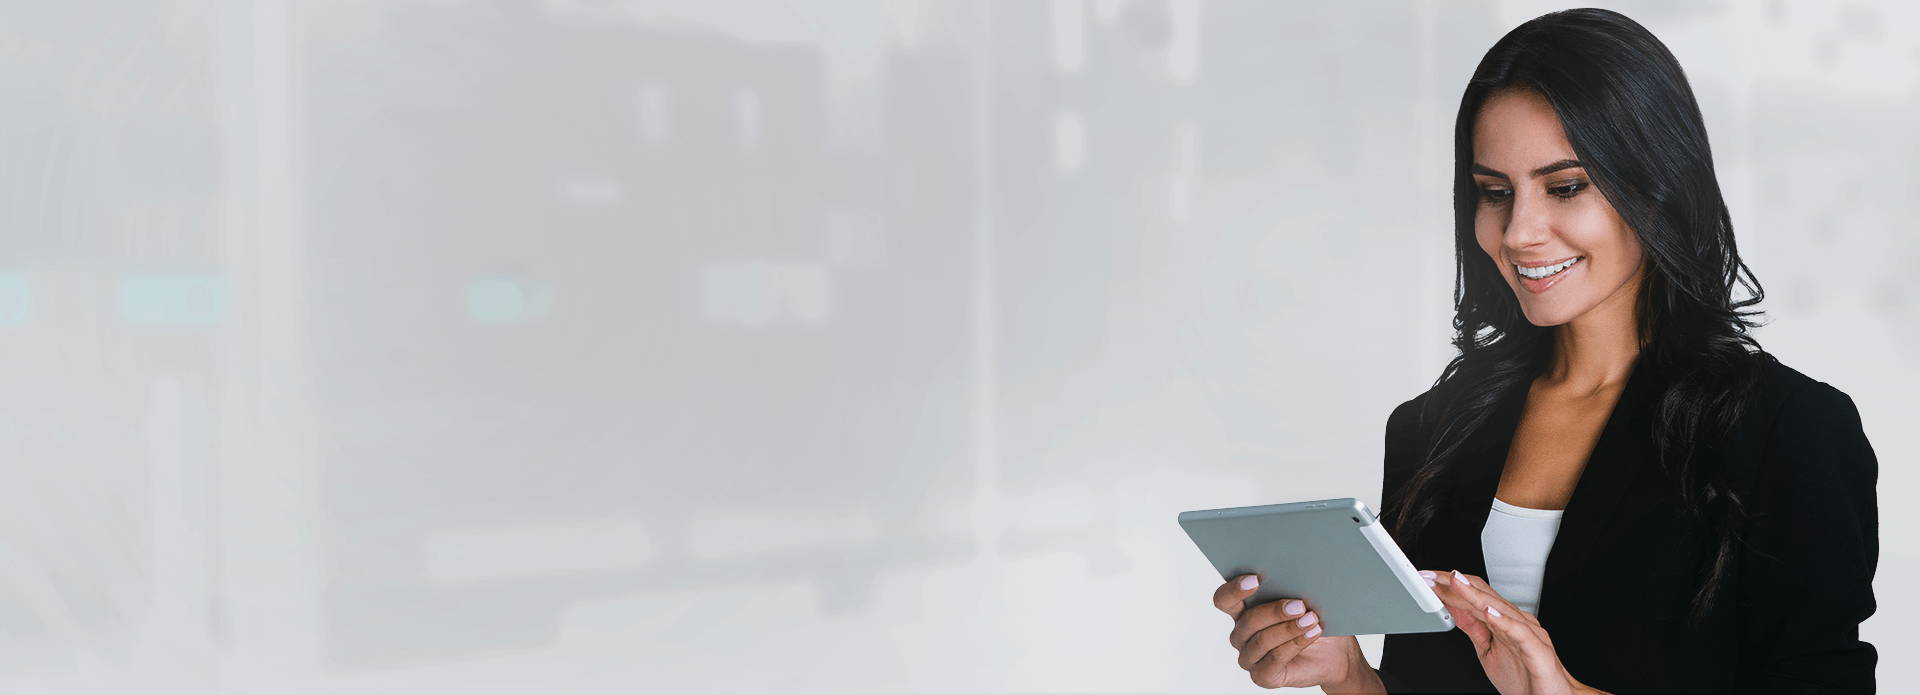 Header image of a woman taking Content Enablers courses on her device